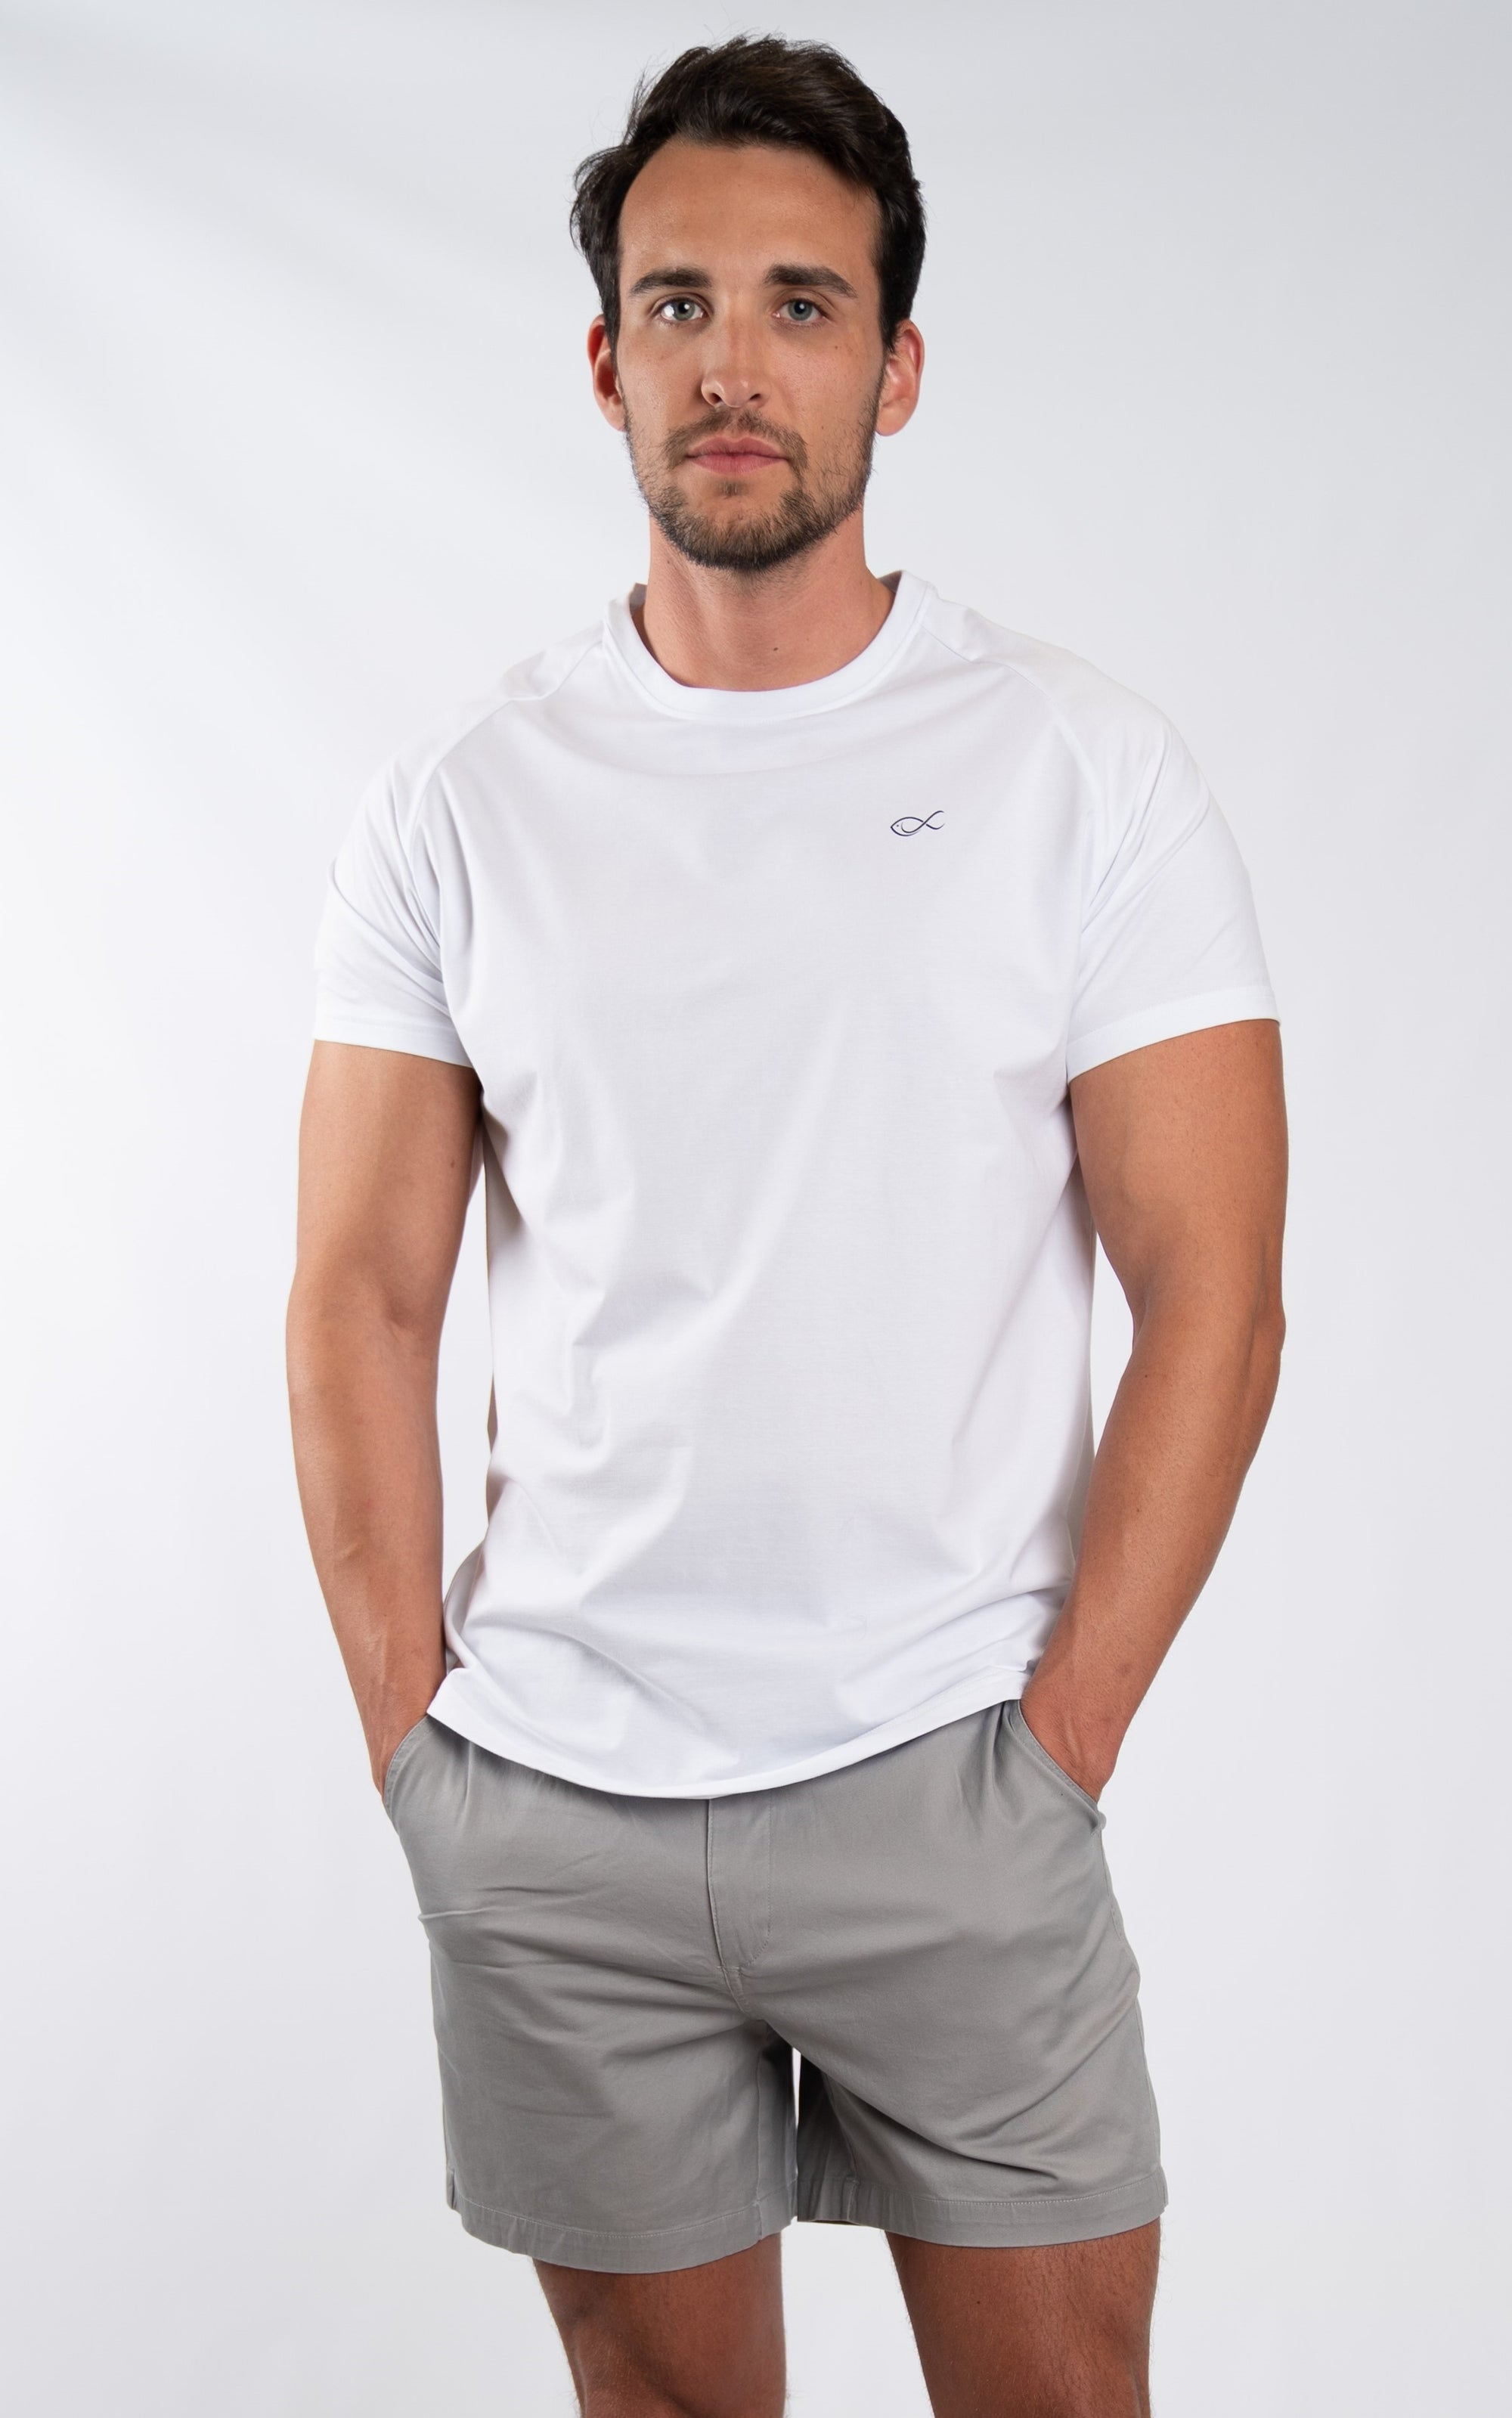 Men's Comfort Tee in White - Southern Athletica